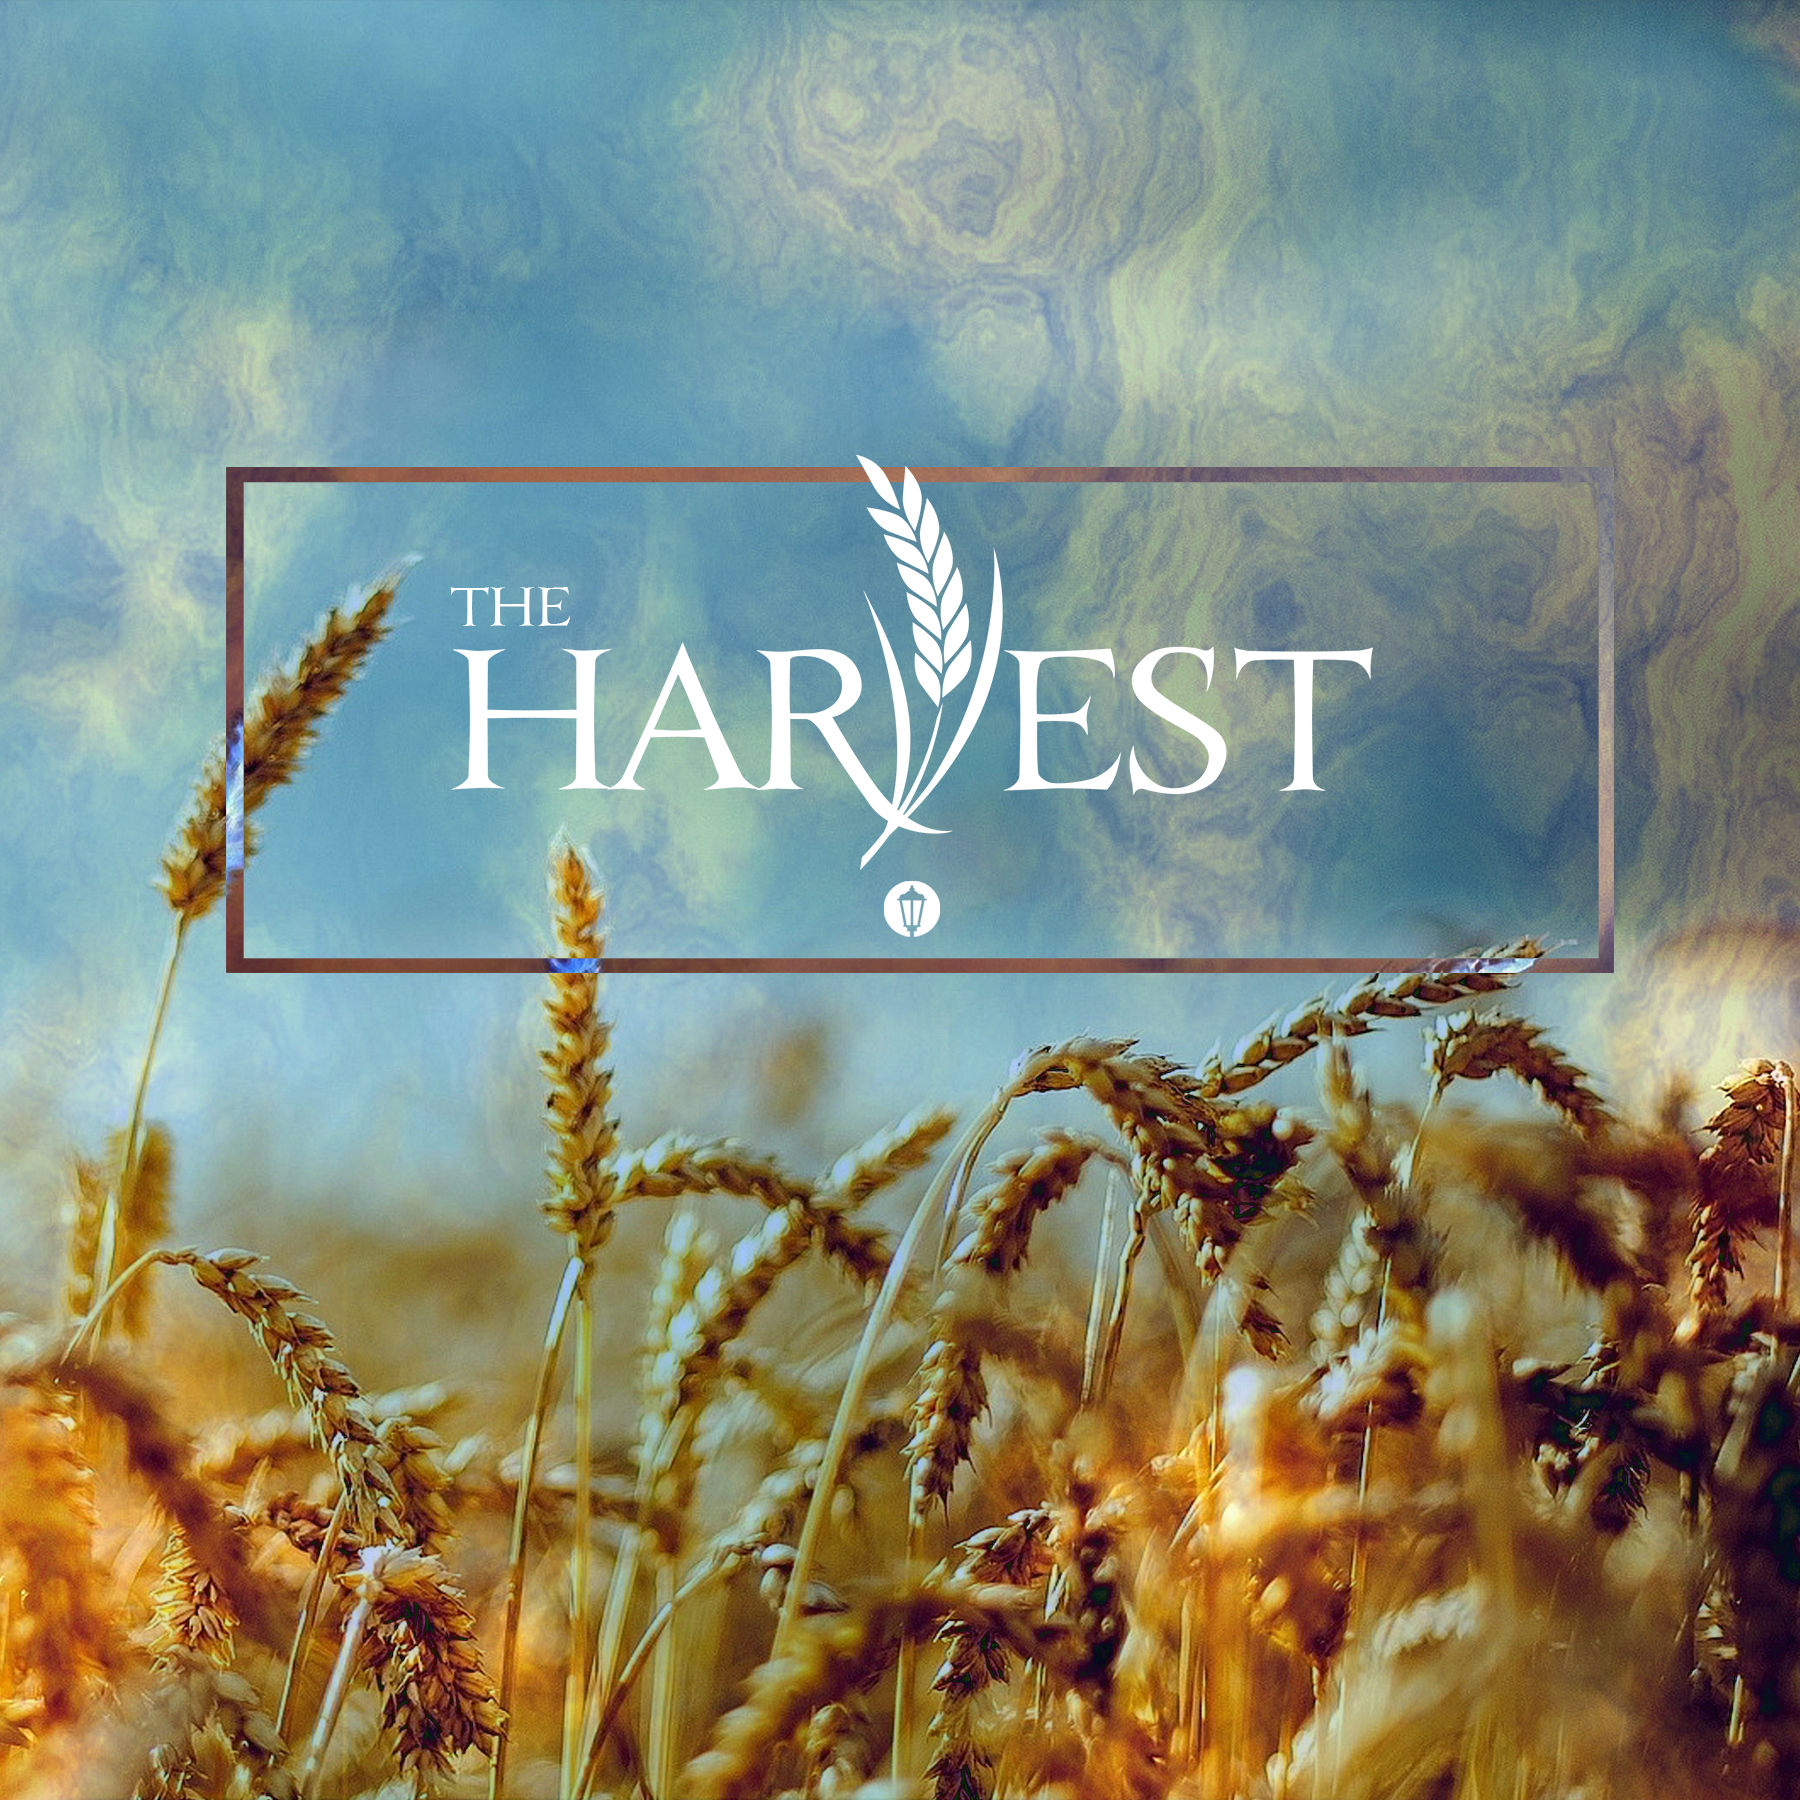 The Harvest -  instagram 2.jpg